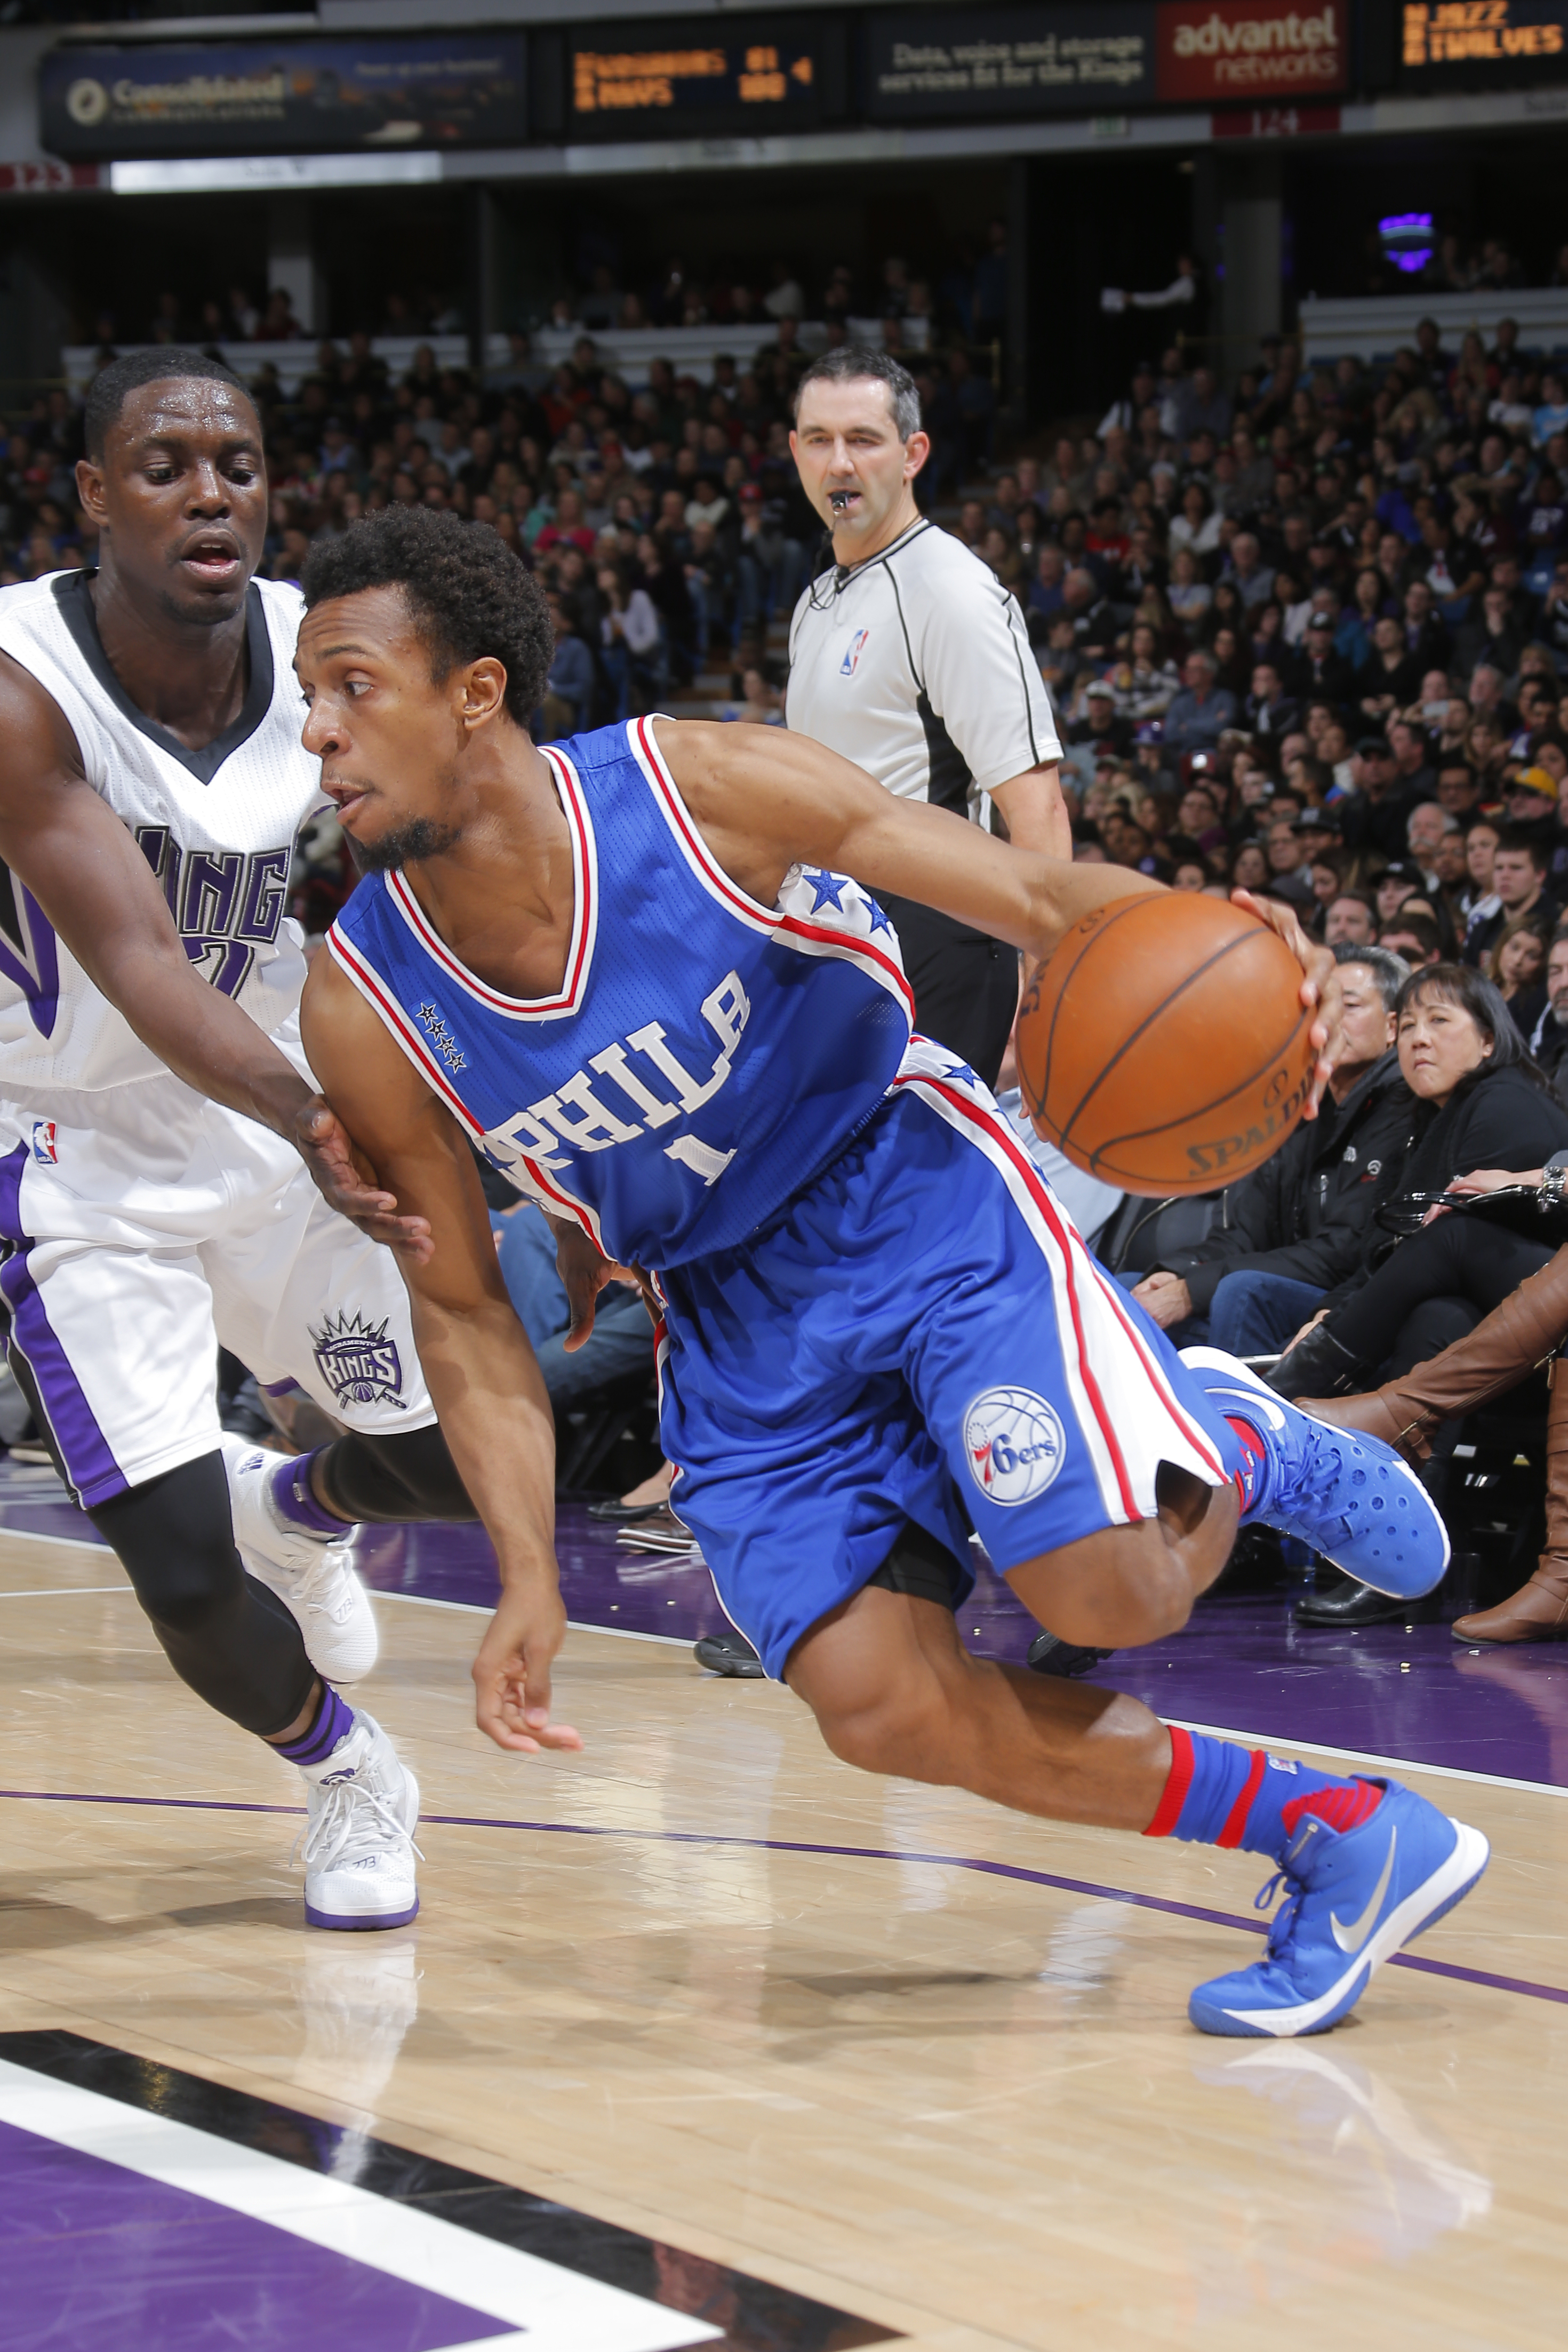 SACRAMENTO, CA - DECEMBER 30: Ish Smith #1 of the Philadelphia 76ers drives to the basket against the Sacramento Kings during the game on December 30, 2015 at Sleep Train Arena in Sacramento, California. (Photo by Rocky Widner/NBAE via Getty Images)